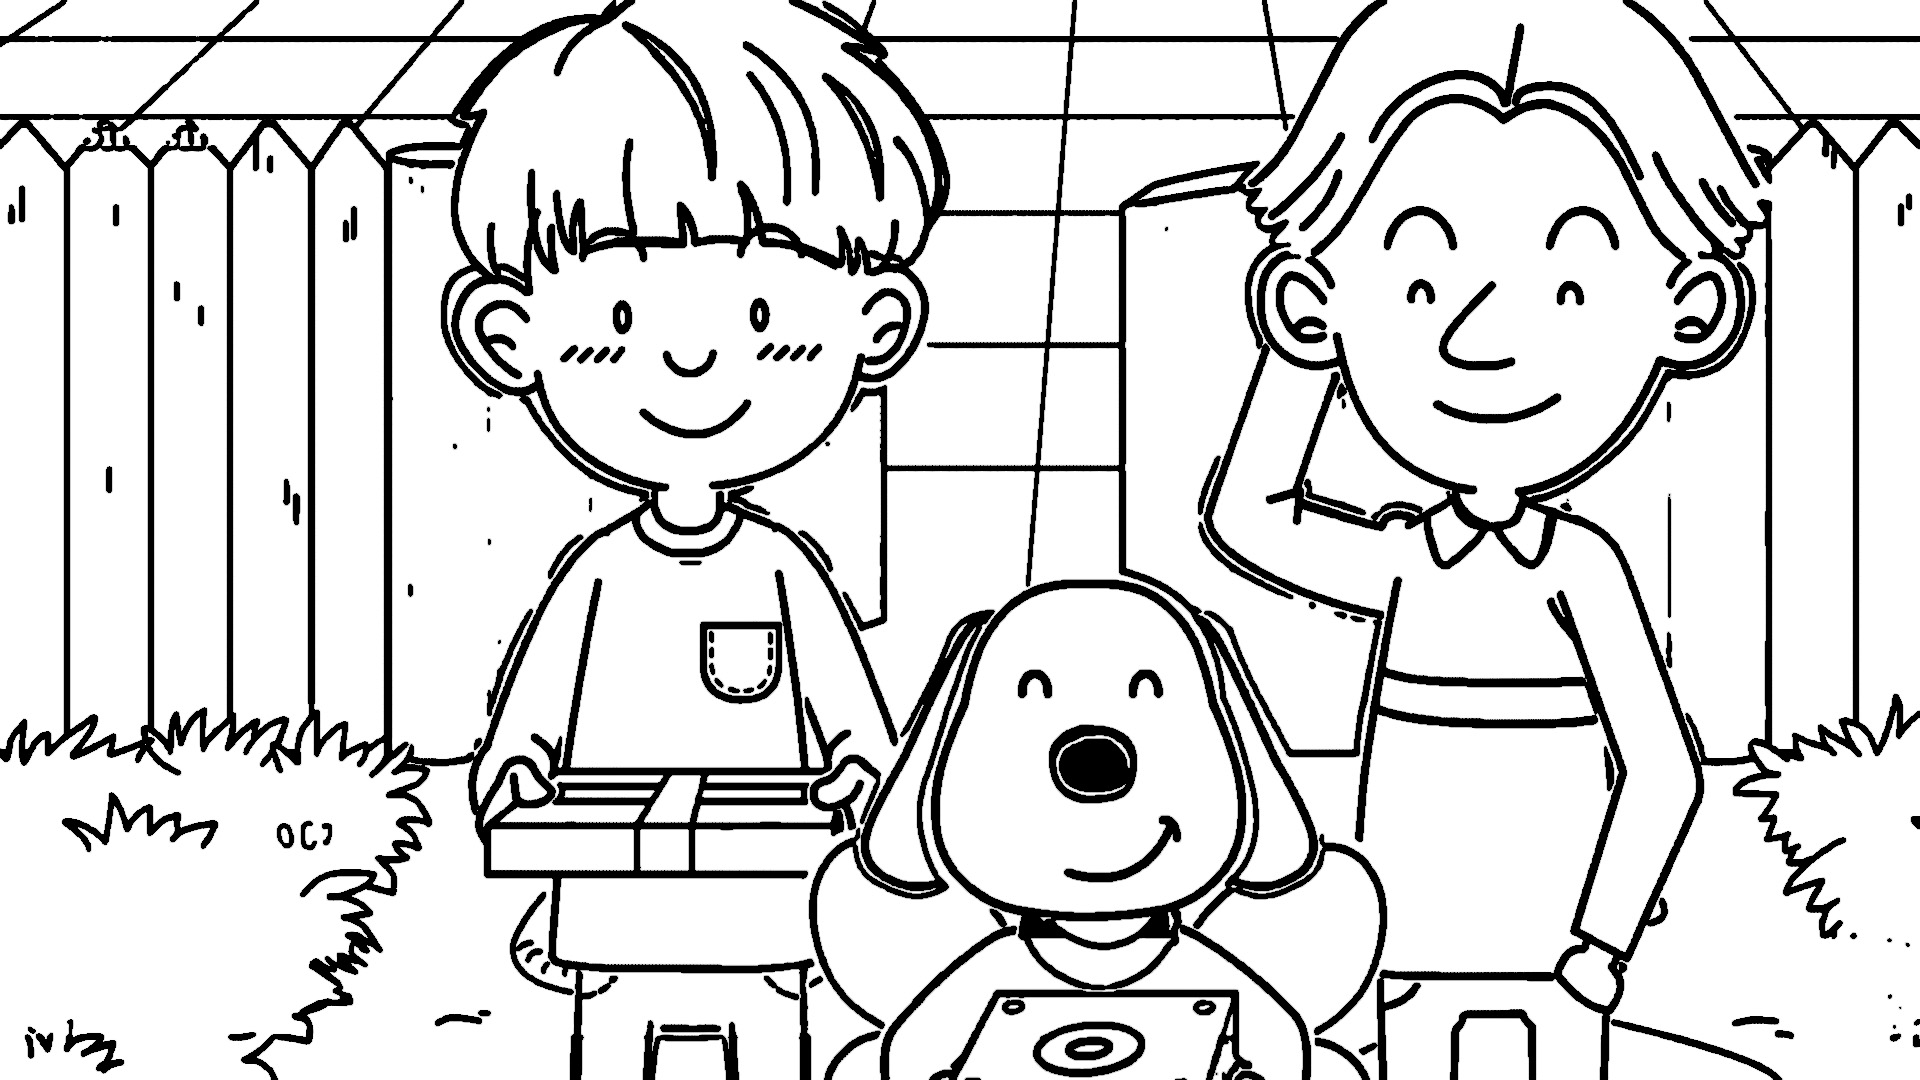 Speaking Cartoon Kids Coloring Page 02